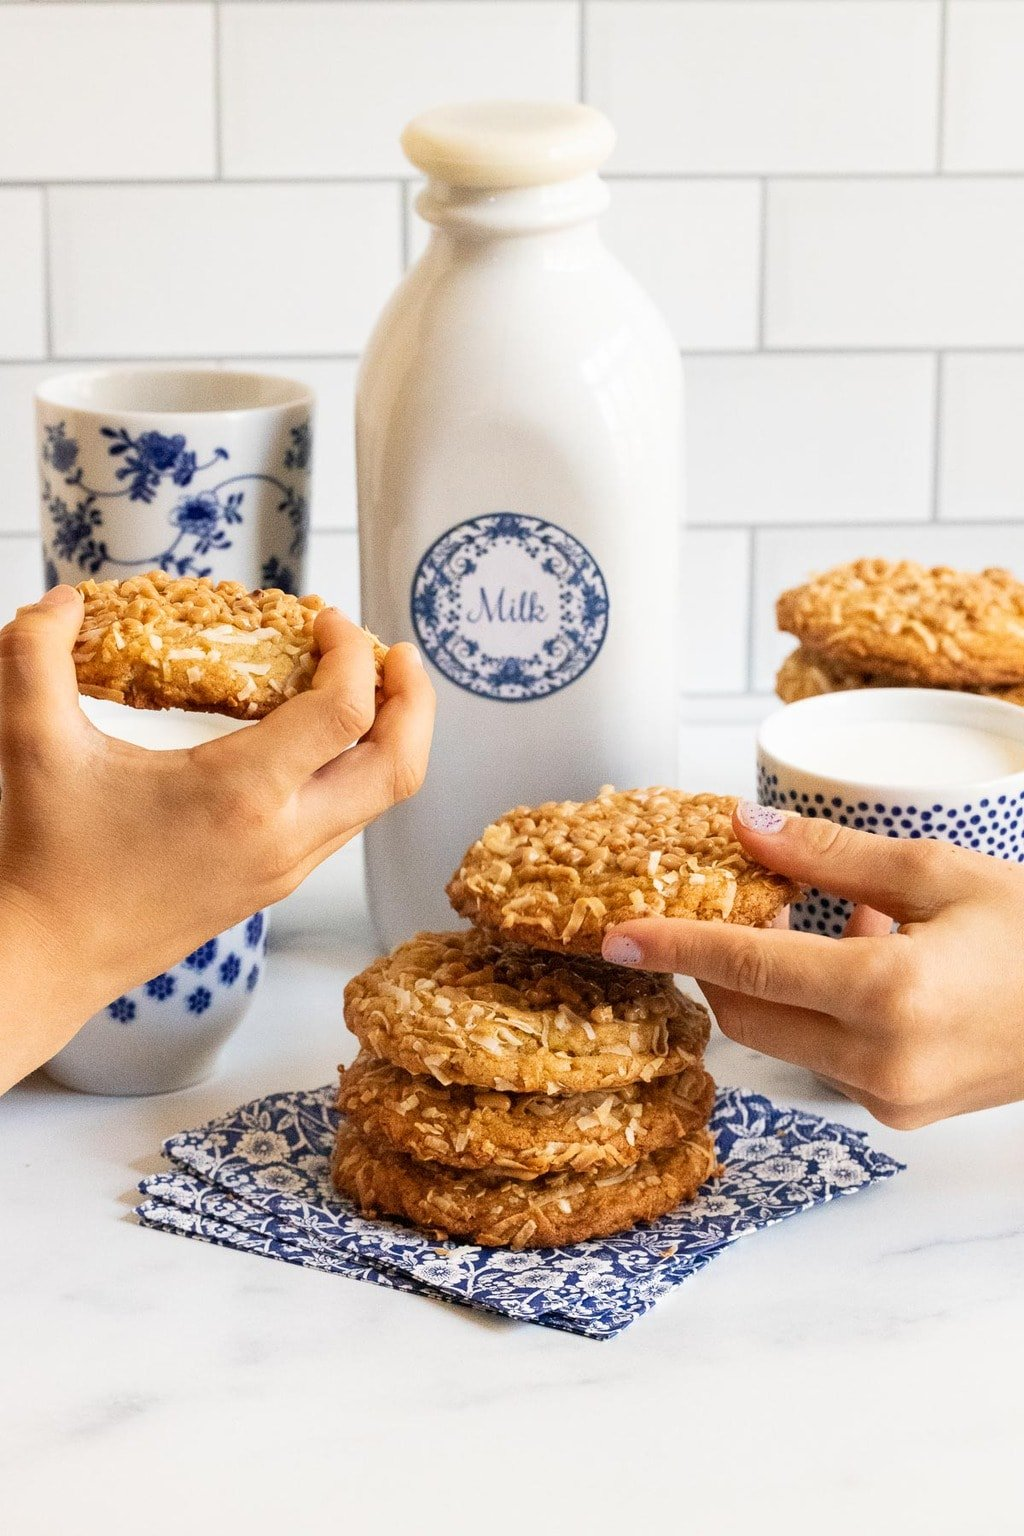 Vertical photo of a batch of Crispy Chewy Carolina Coconut Cookies with two kids hands helping themselves to the cookies.